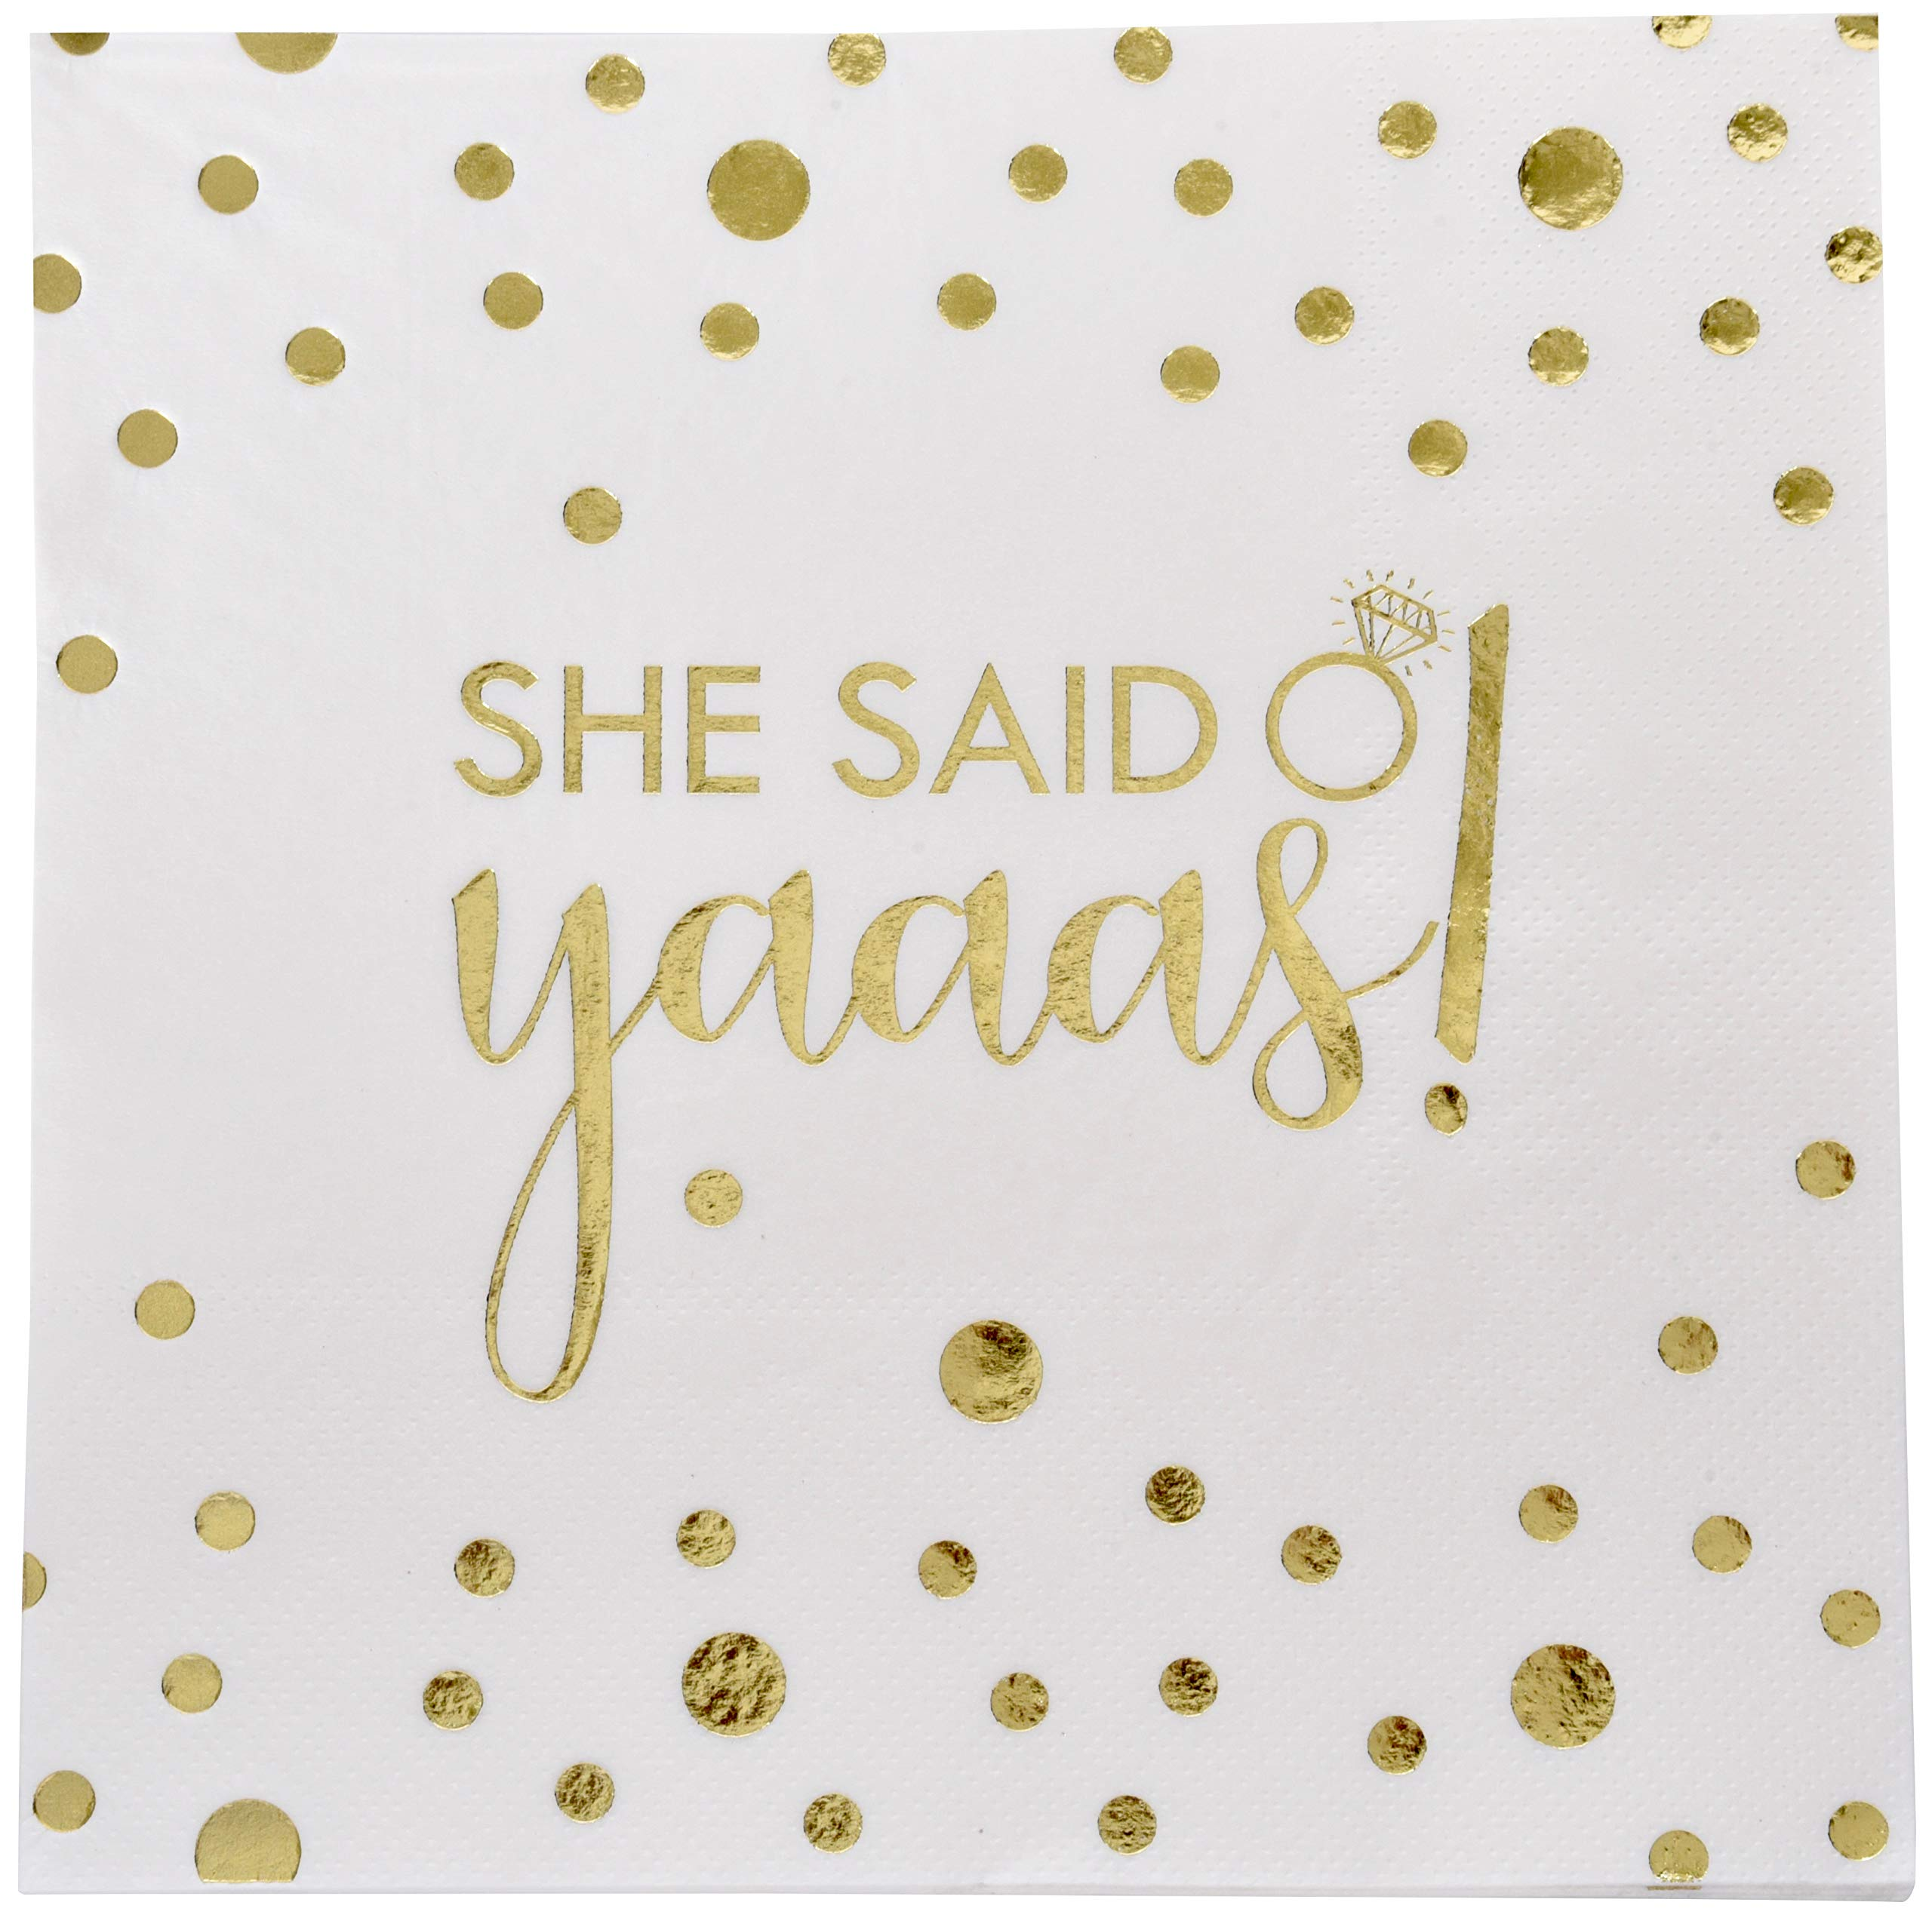 100 Engagement Wedding Napkins She Said Yaaas Luncheon 3-Ply with Gold Foil for Bridal Shower Bachelorette Party Decorations by Gift Boutique by Gift Boutique